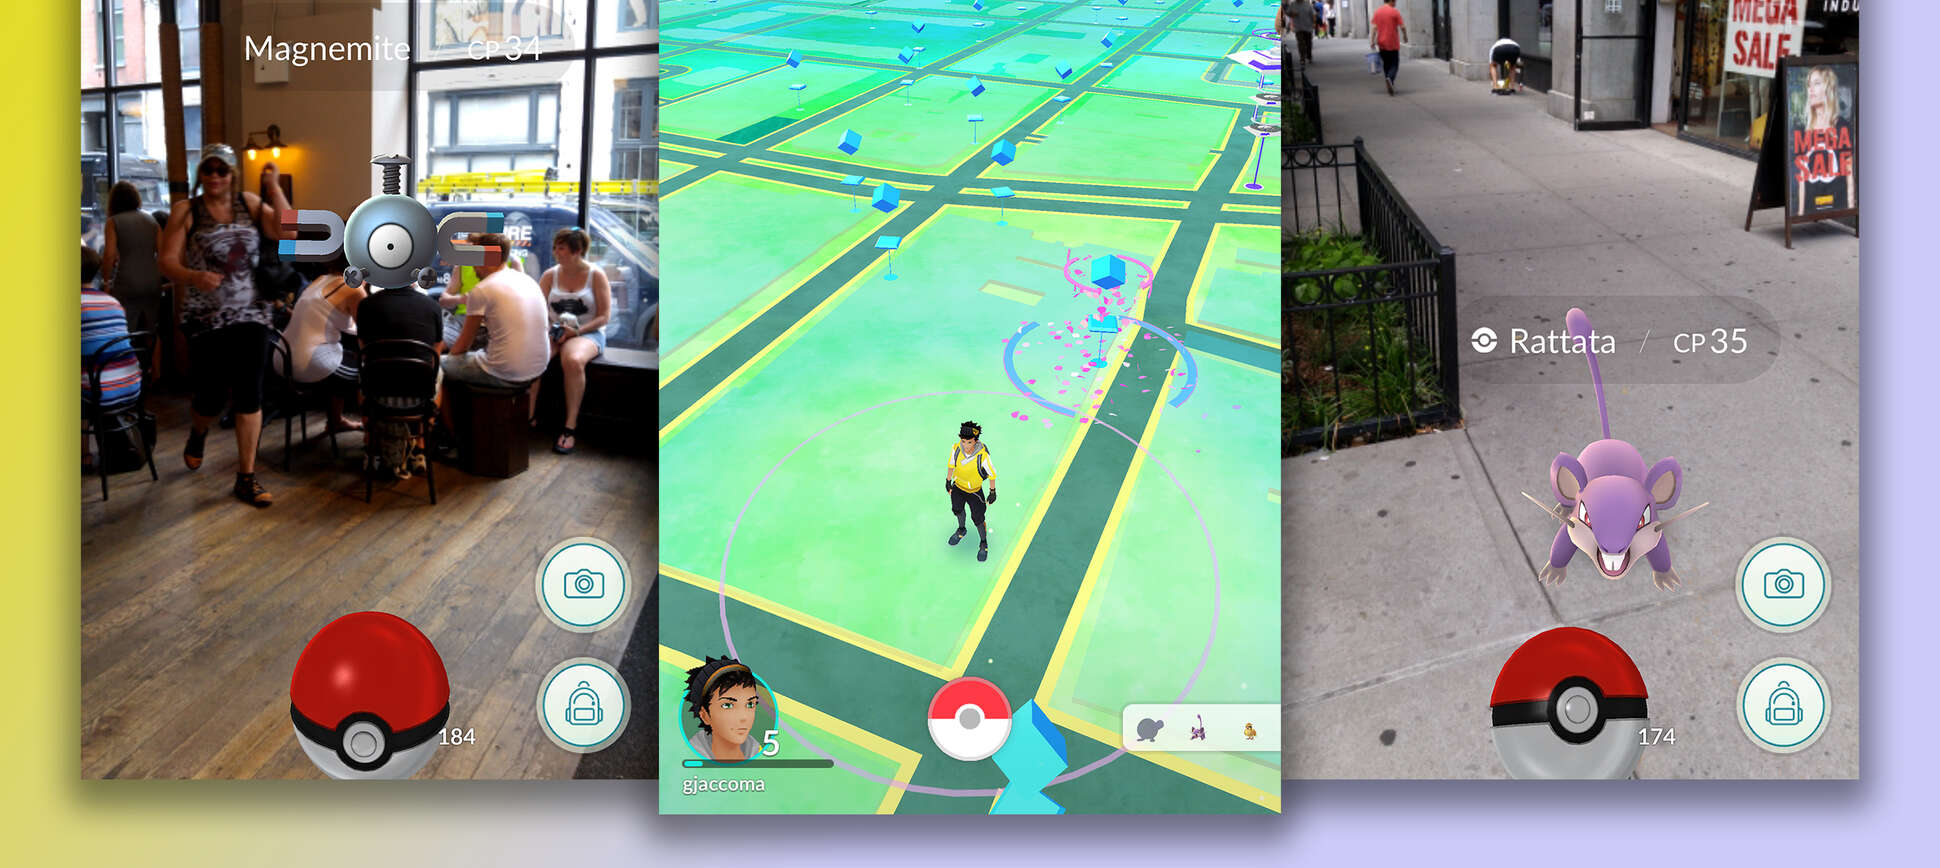 How \'Pokémon Go\' Could Leave Dating Apps in the Dust